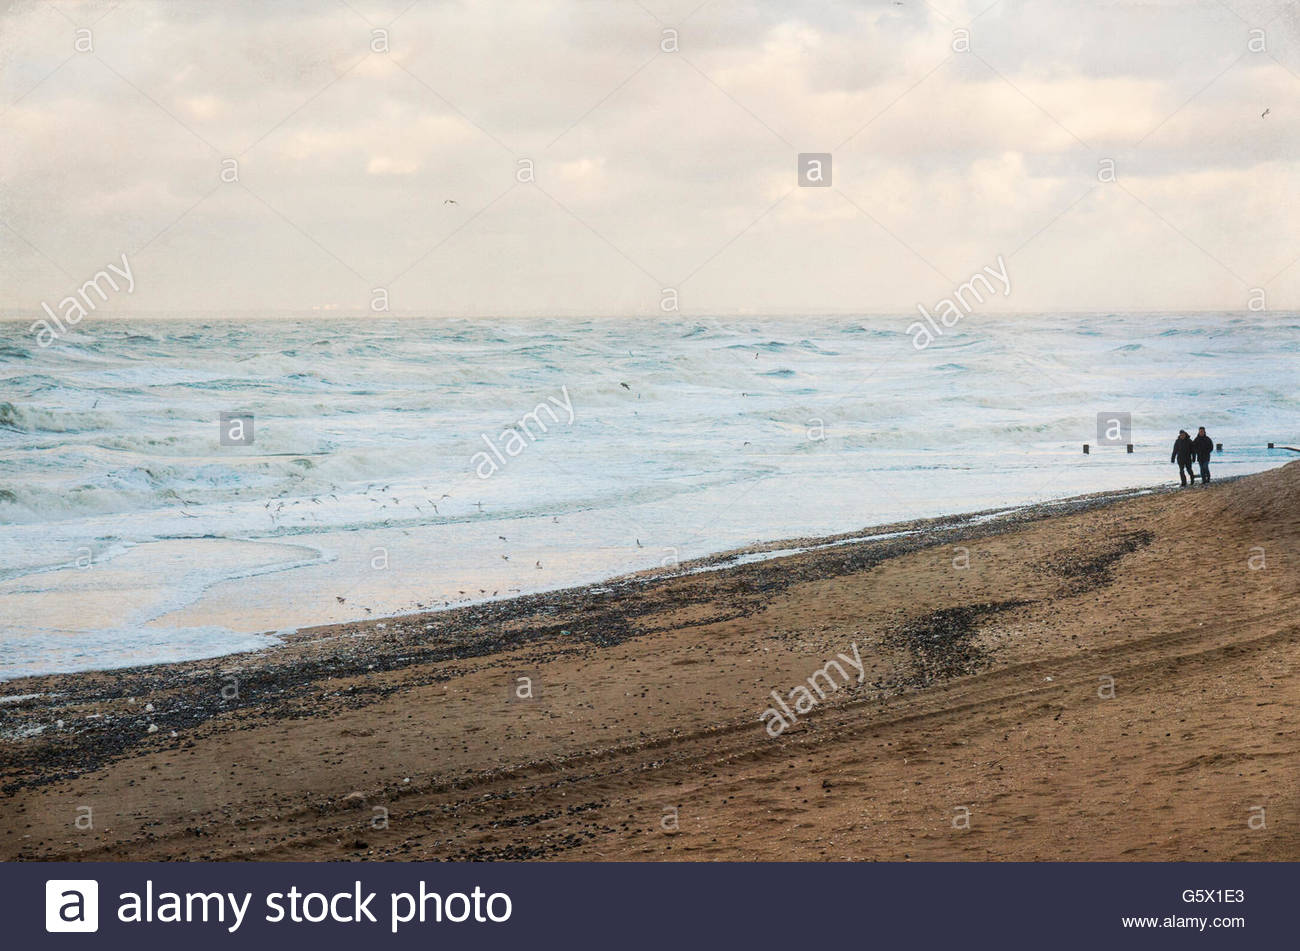 two persons walking on the beach - Stock Image